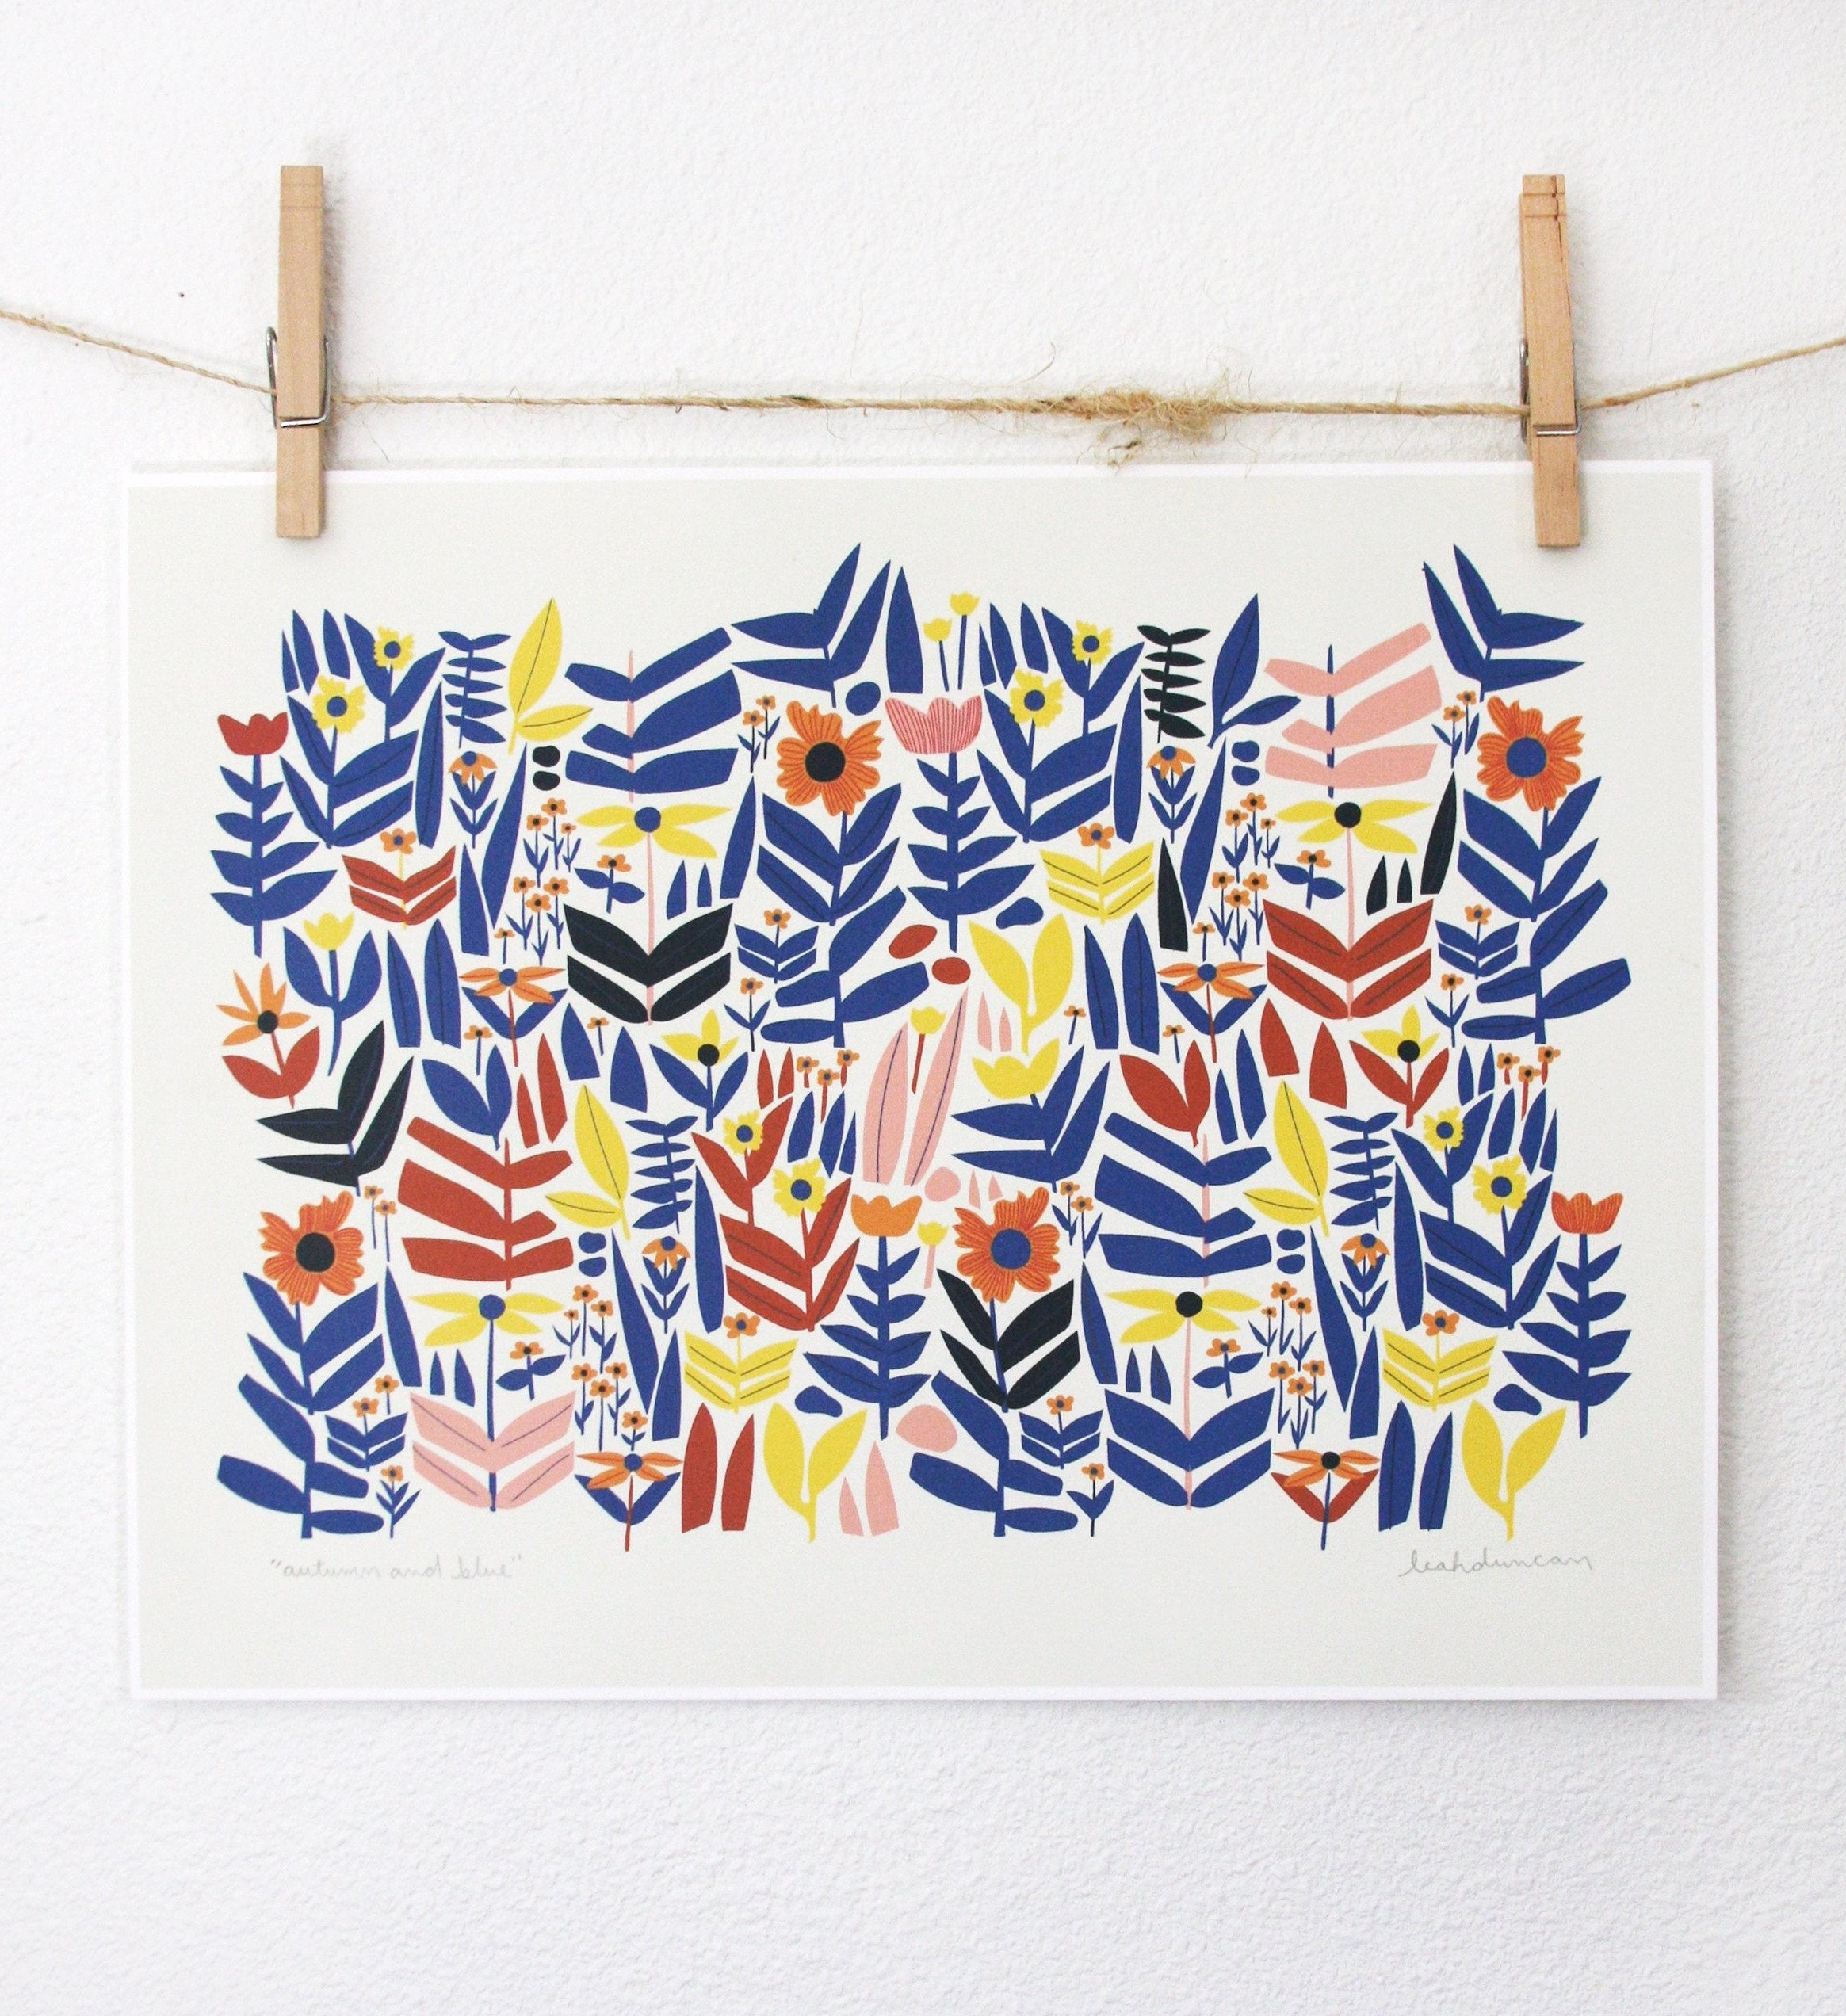 blue and red abstract art printed on a white piece of paper, hanging from twine and wood clips